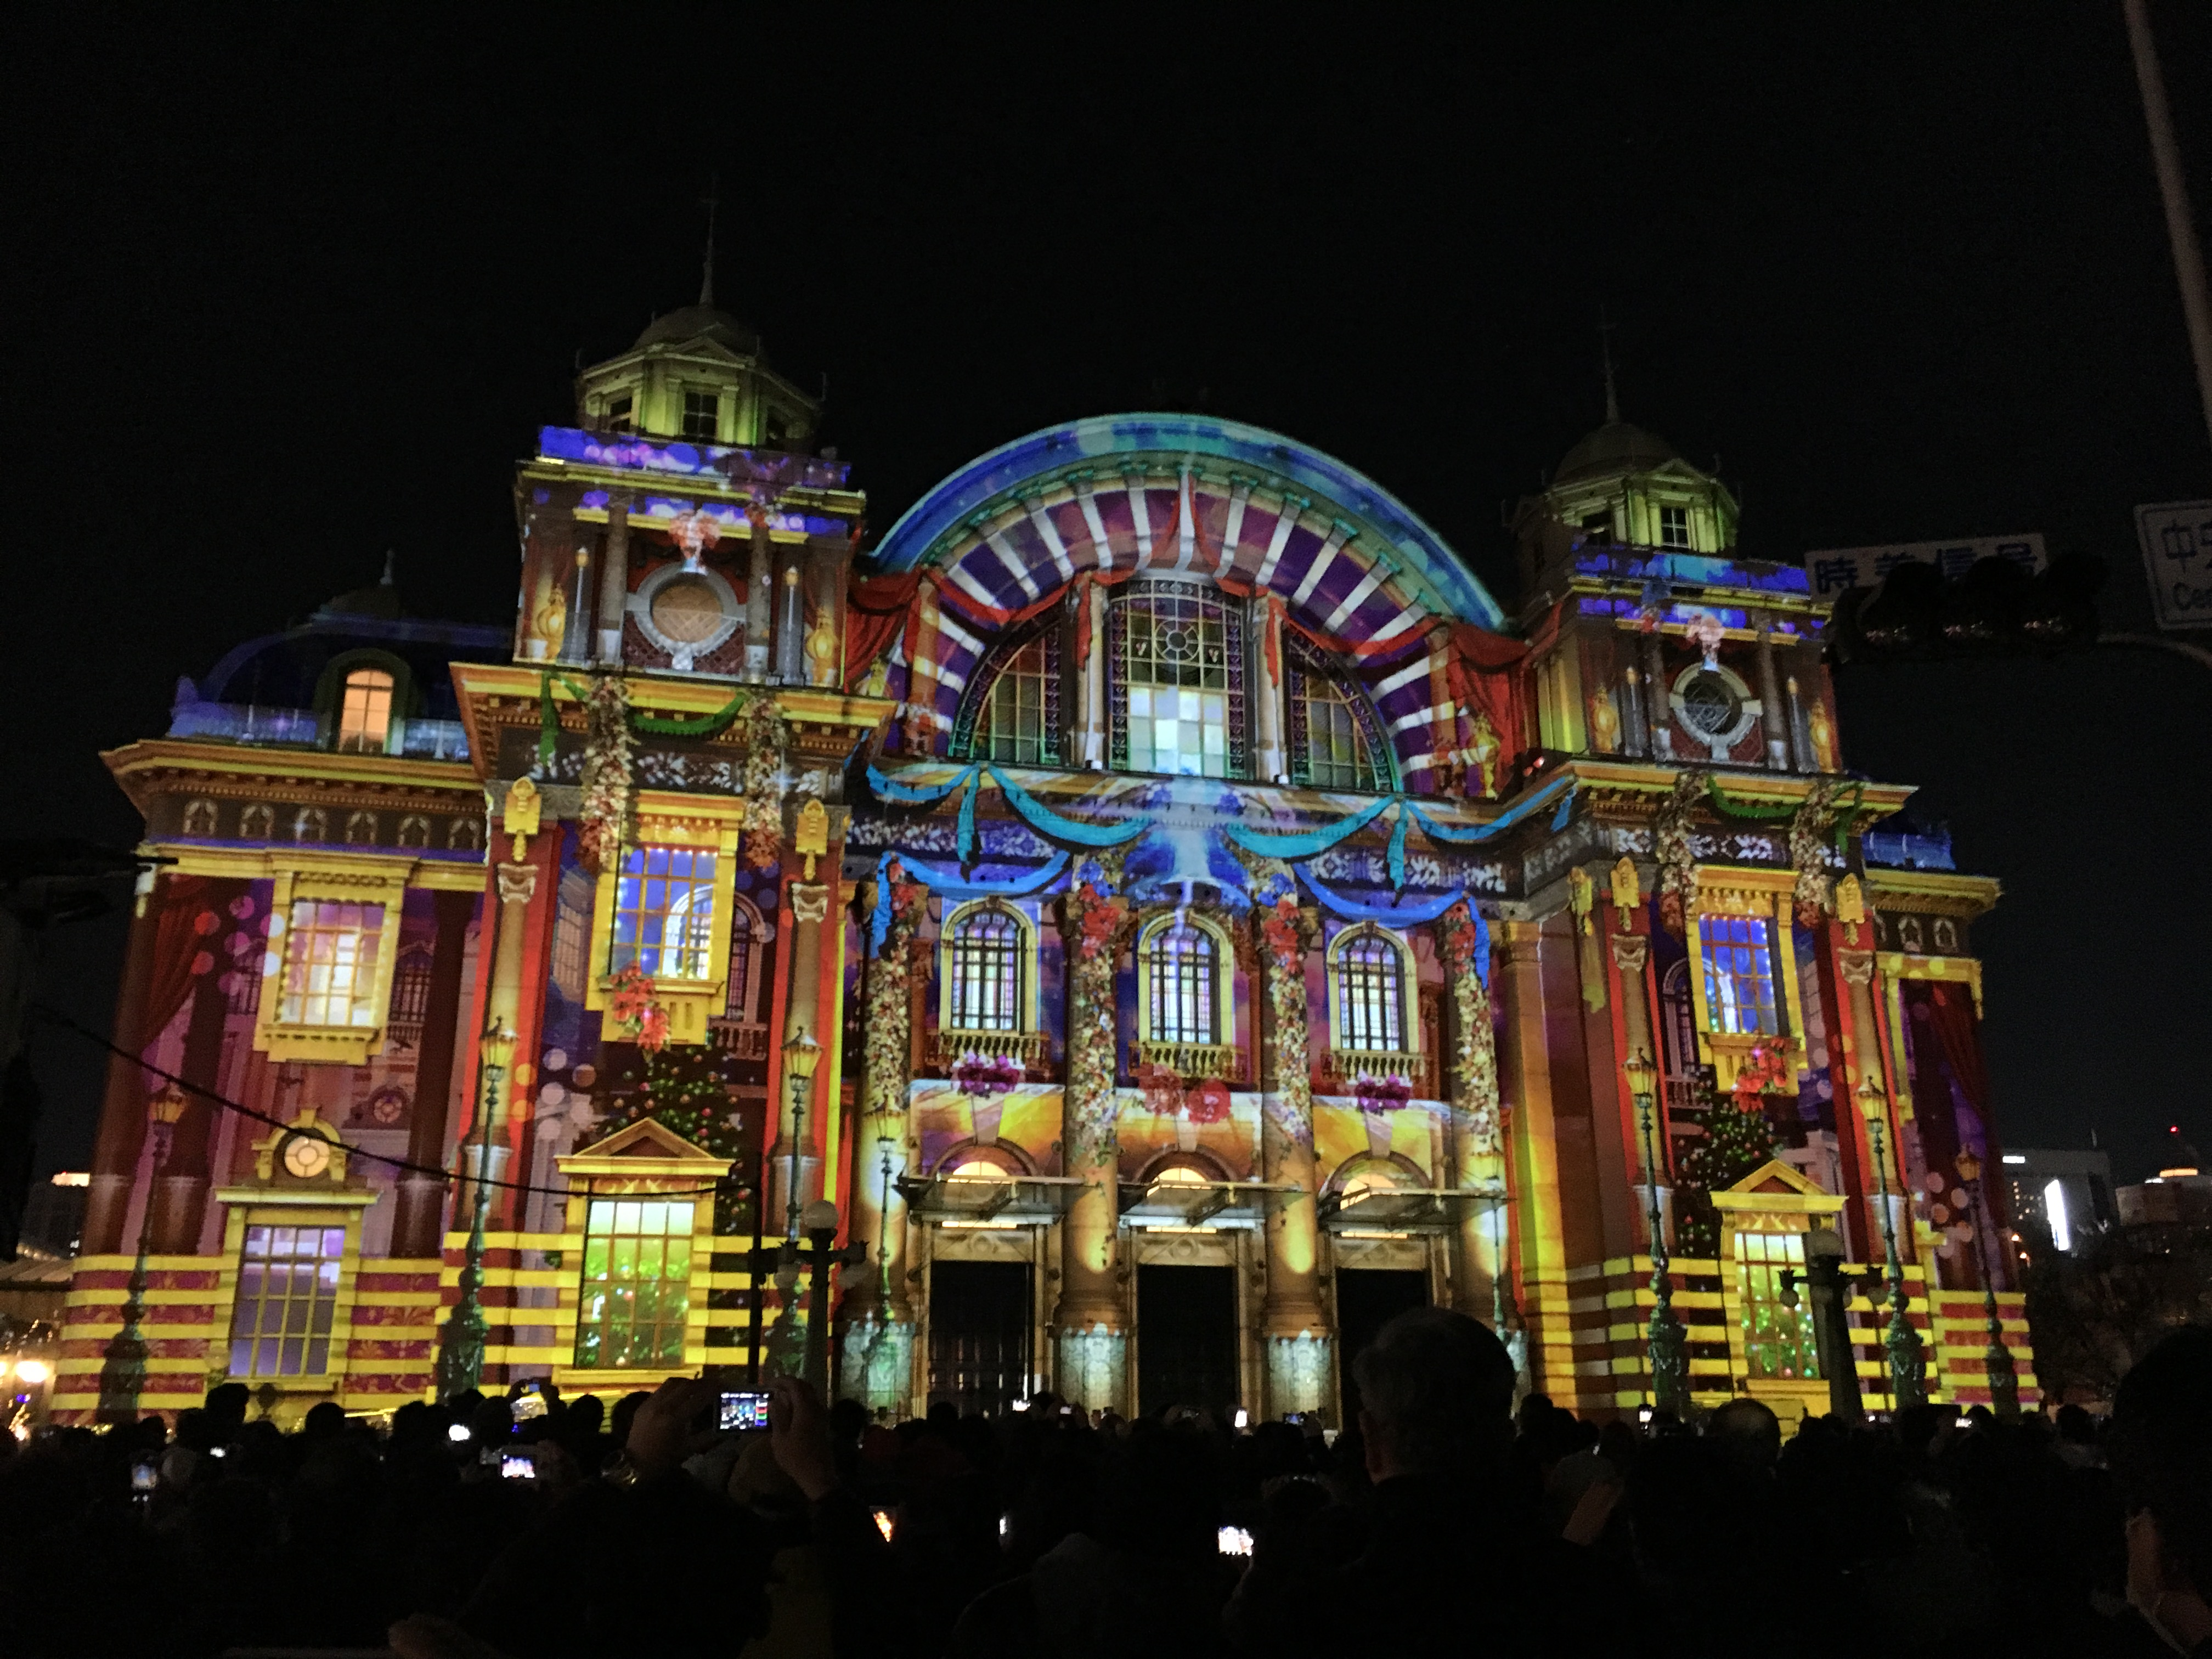 Osaka public hall covered in a 3-D image light show